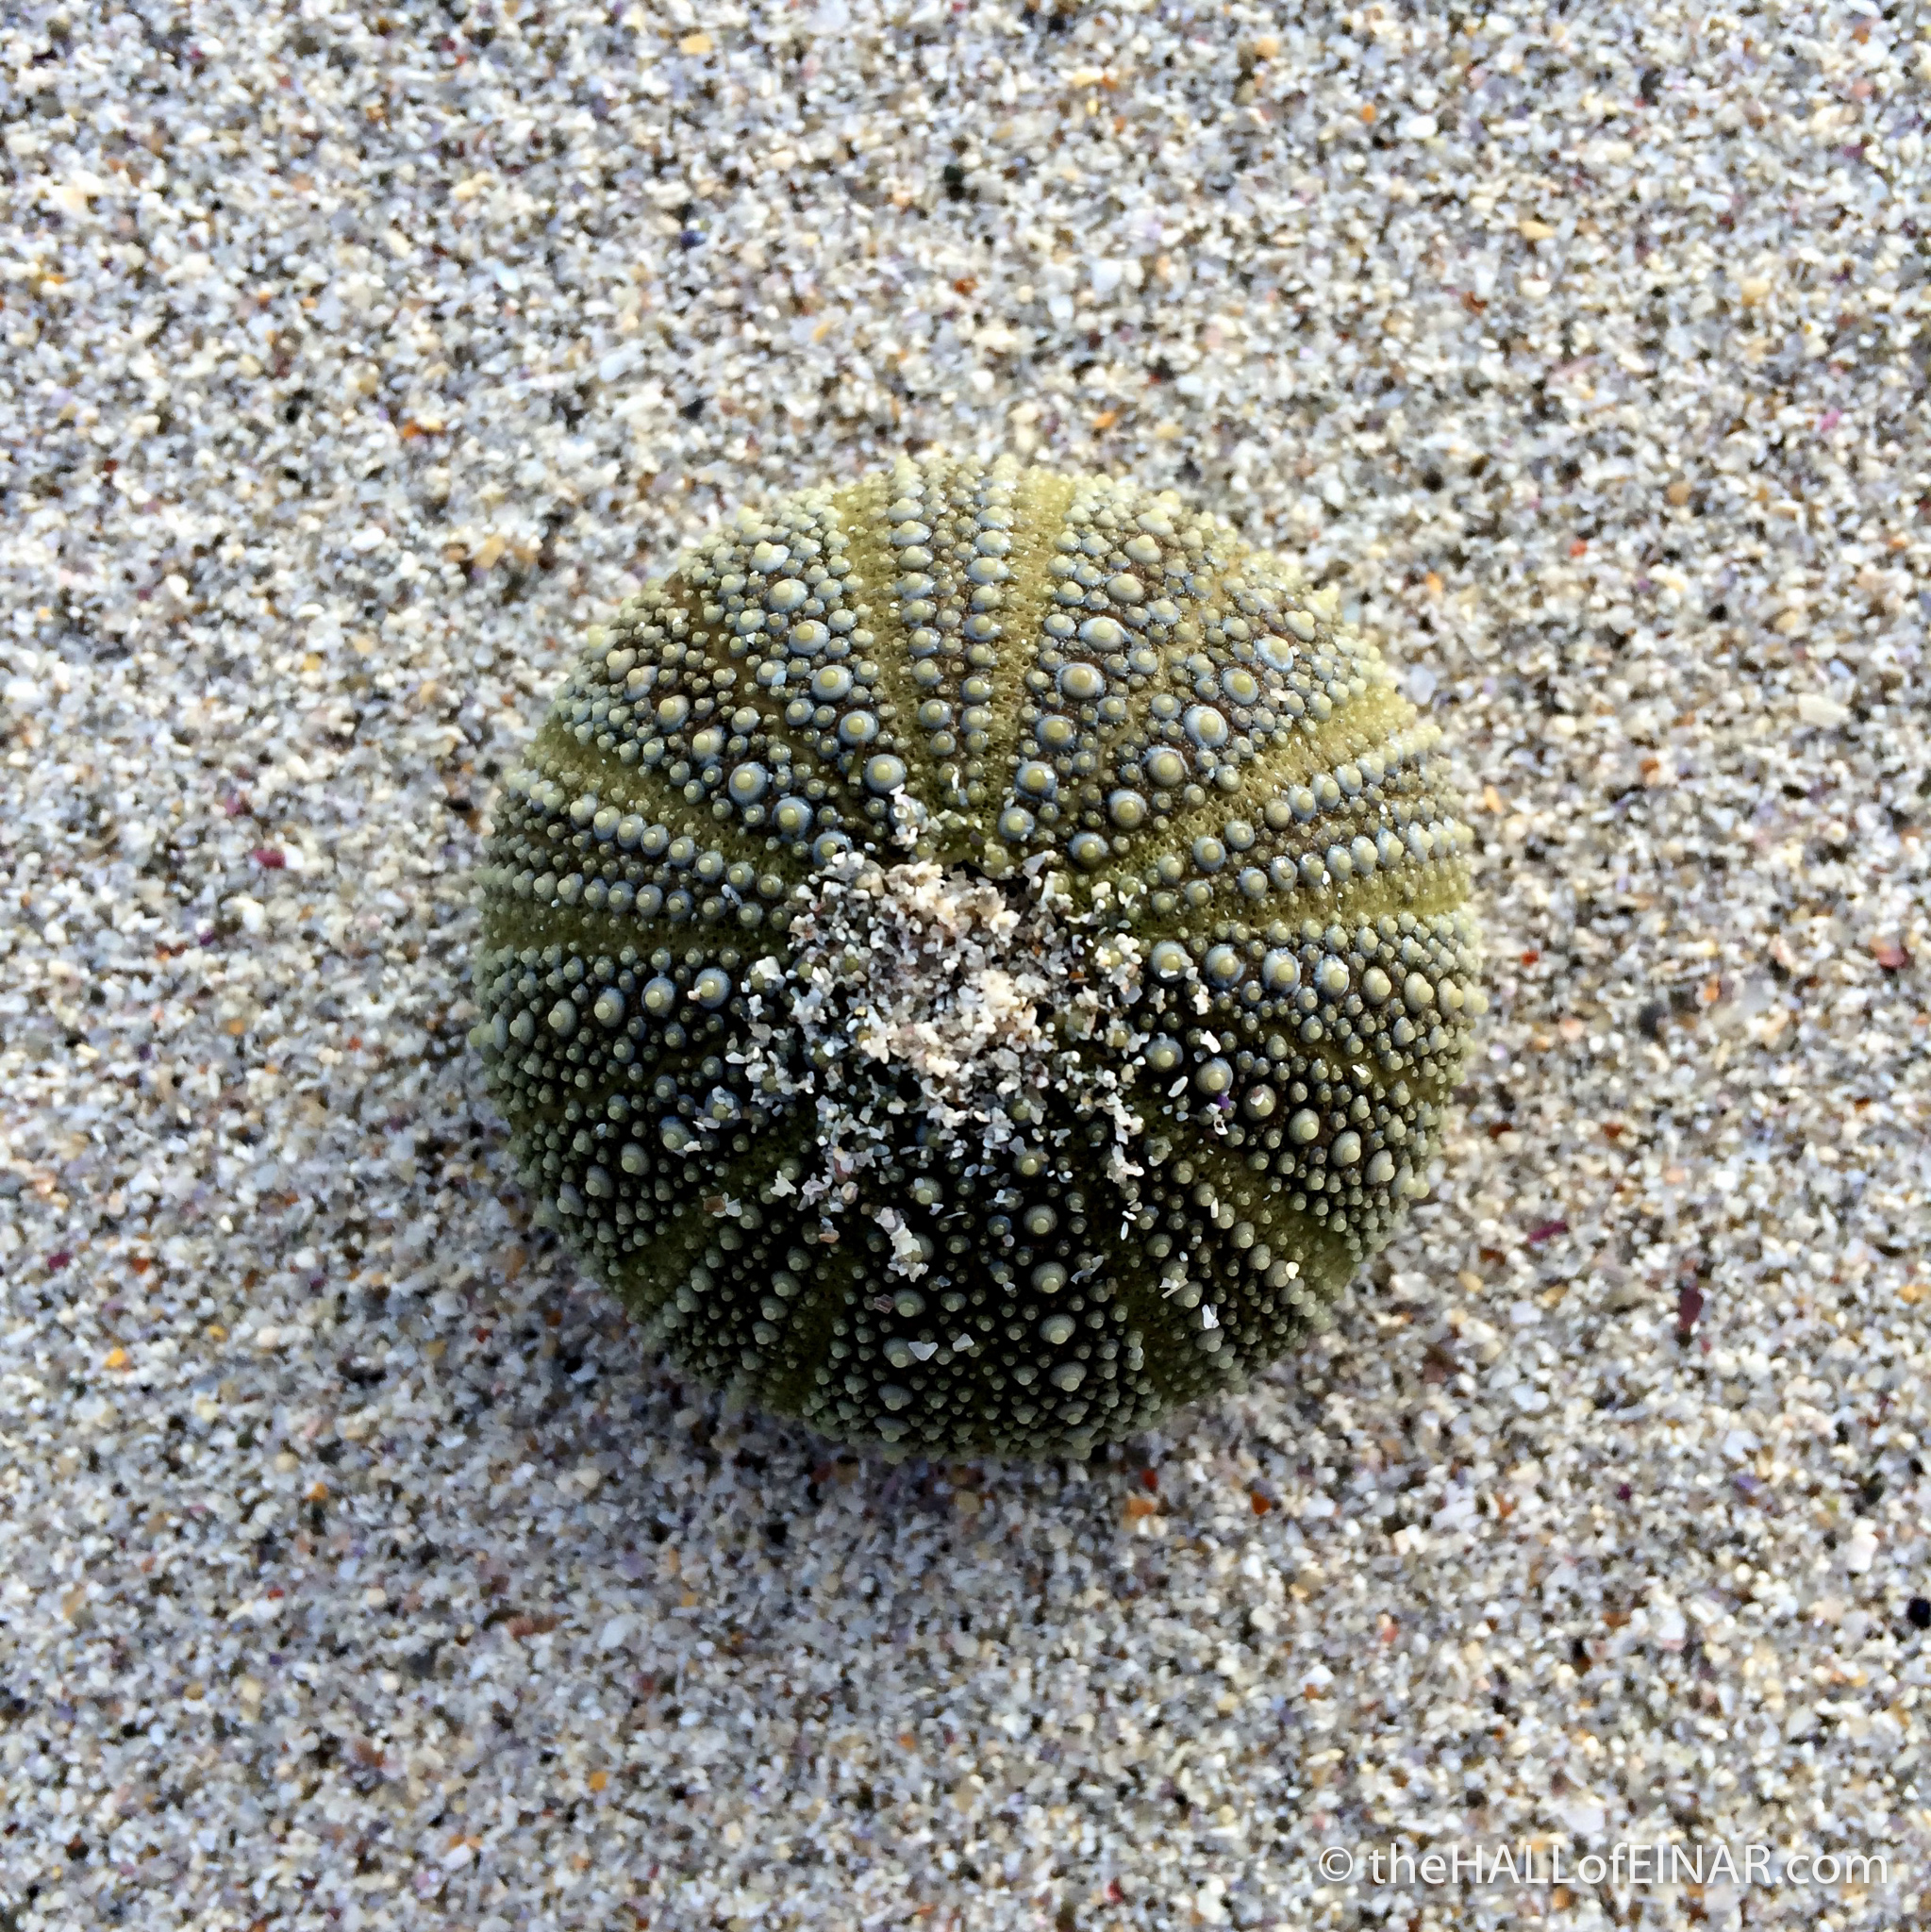 Green Sea Urchin - The Hall of Einar - photograph (c) 2016 David Bailey (not the)